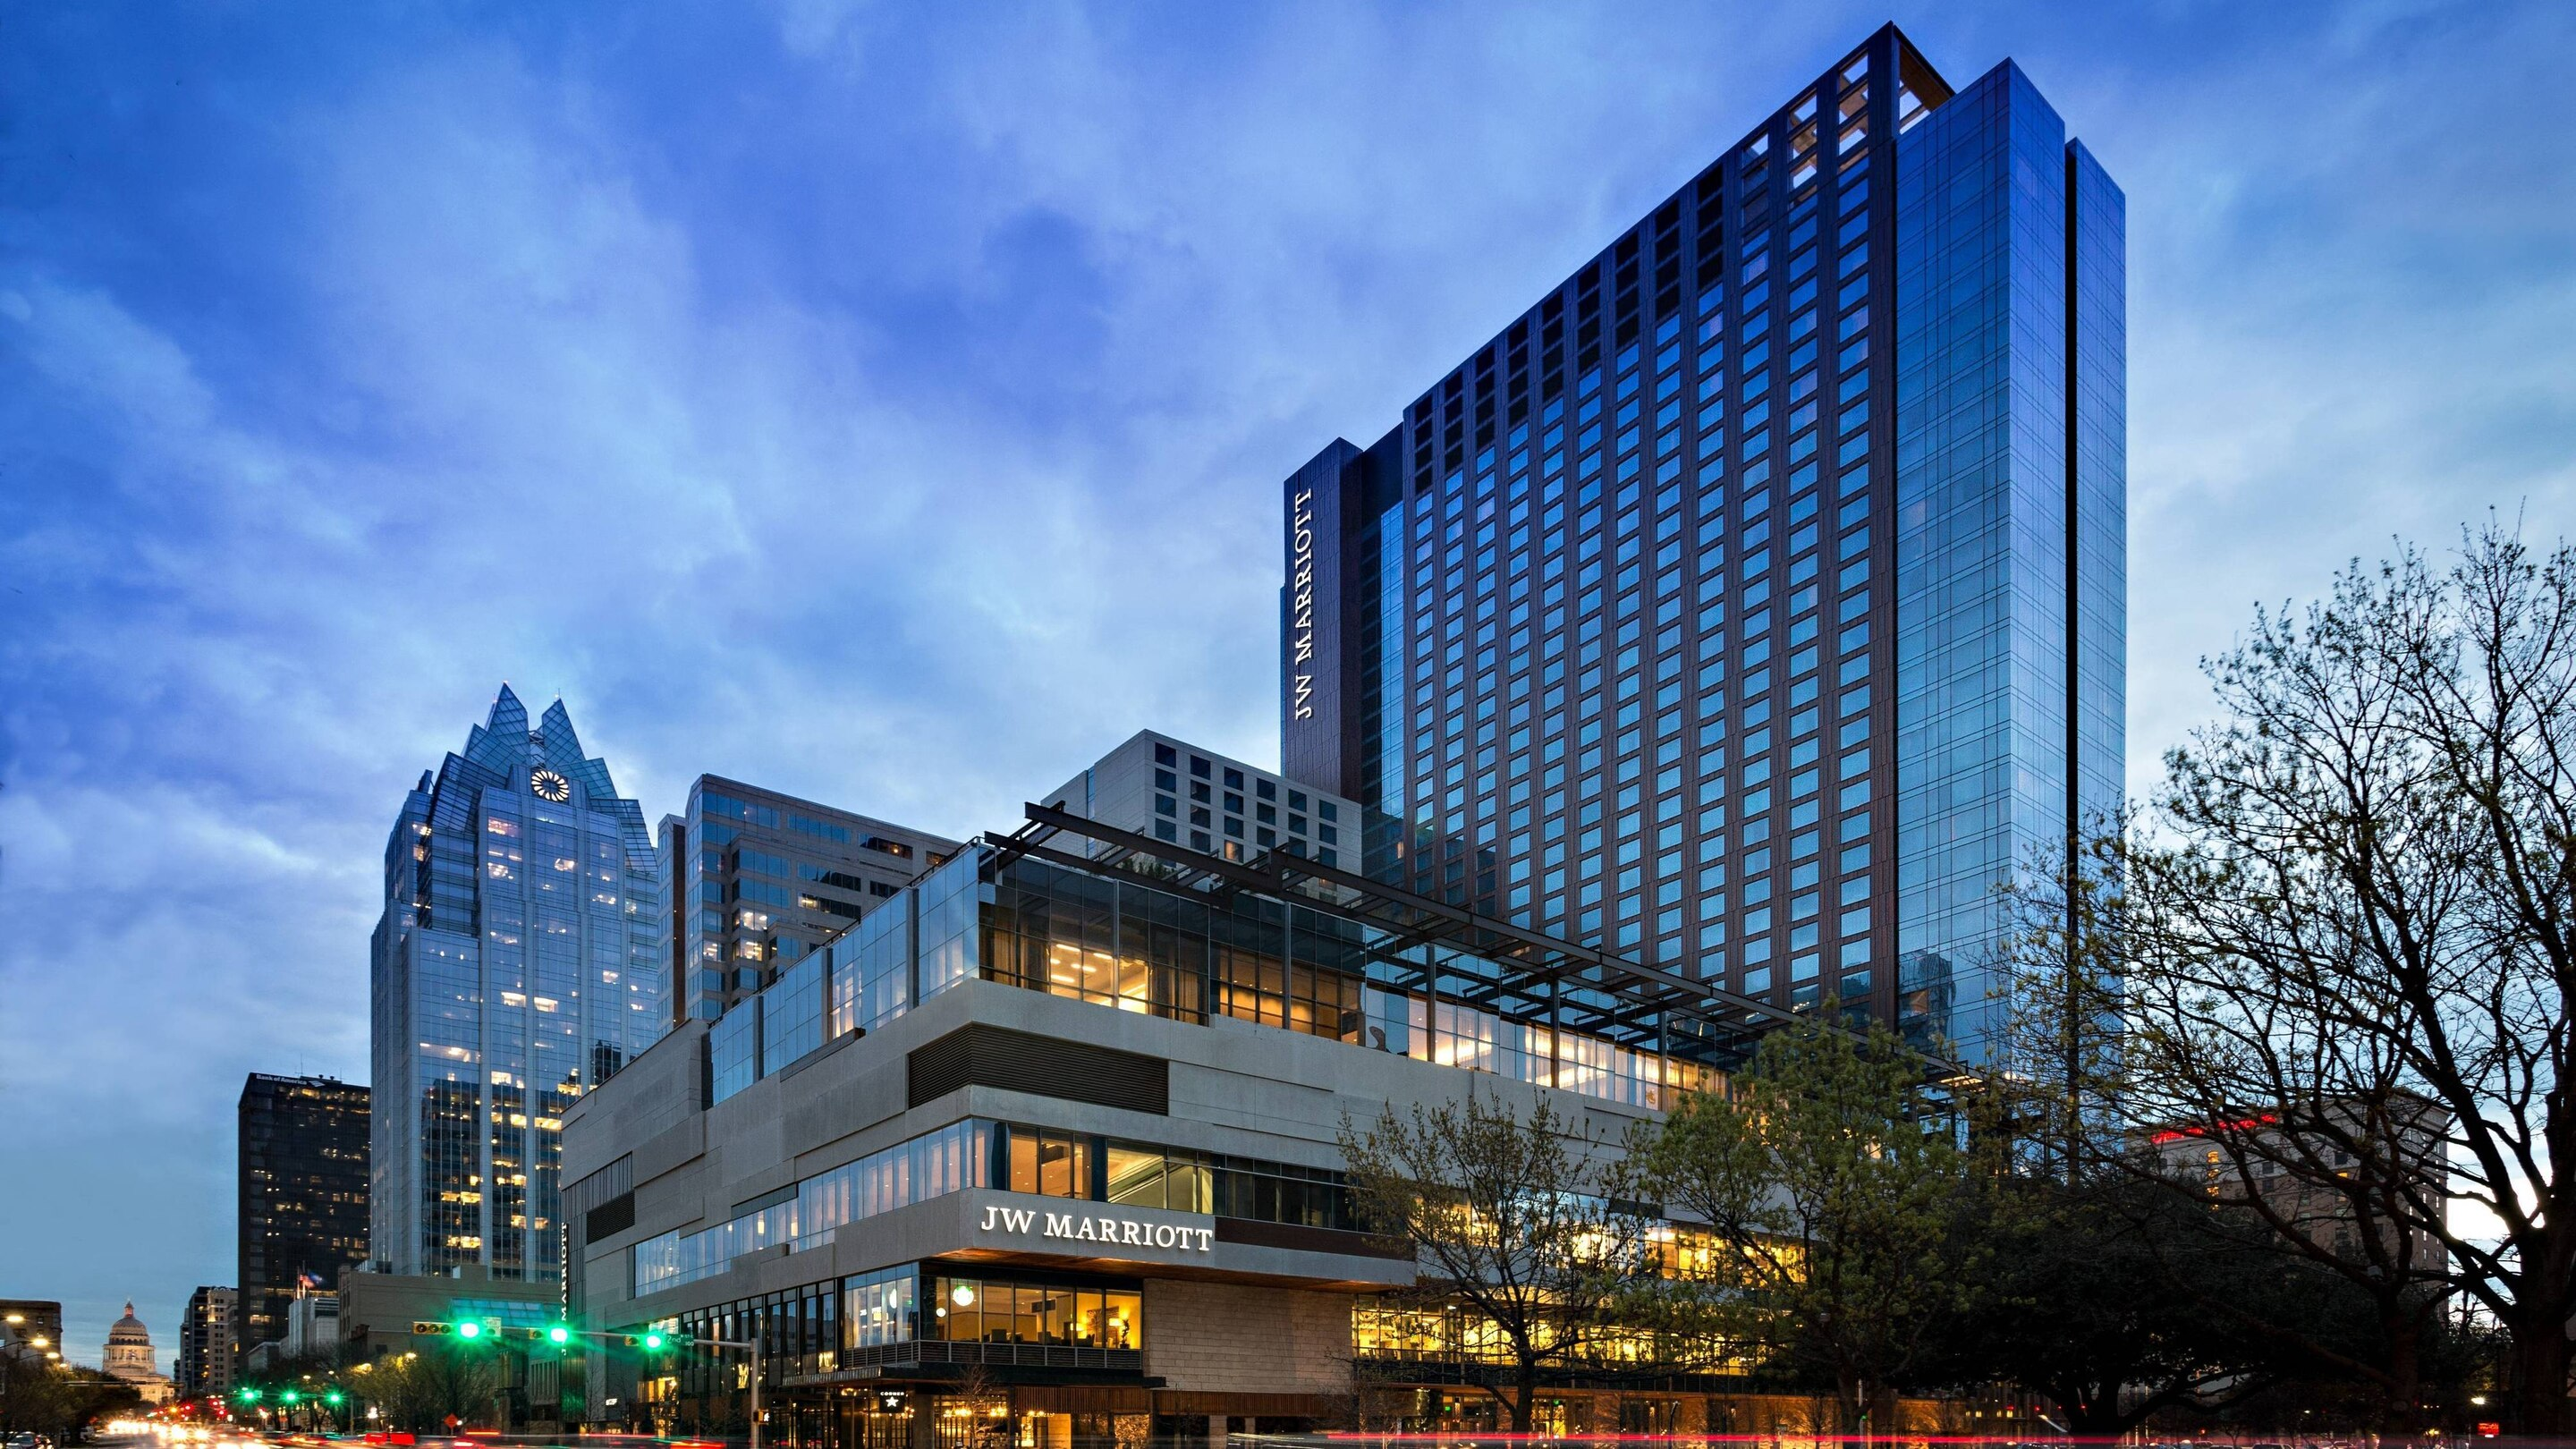 JW Marriott in the heart of downtown Austin